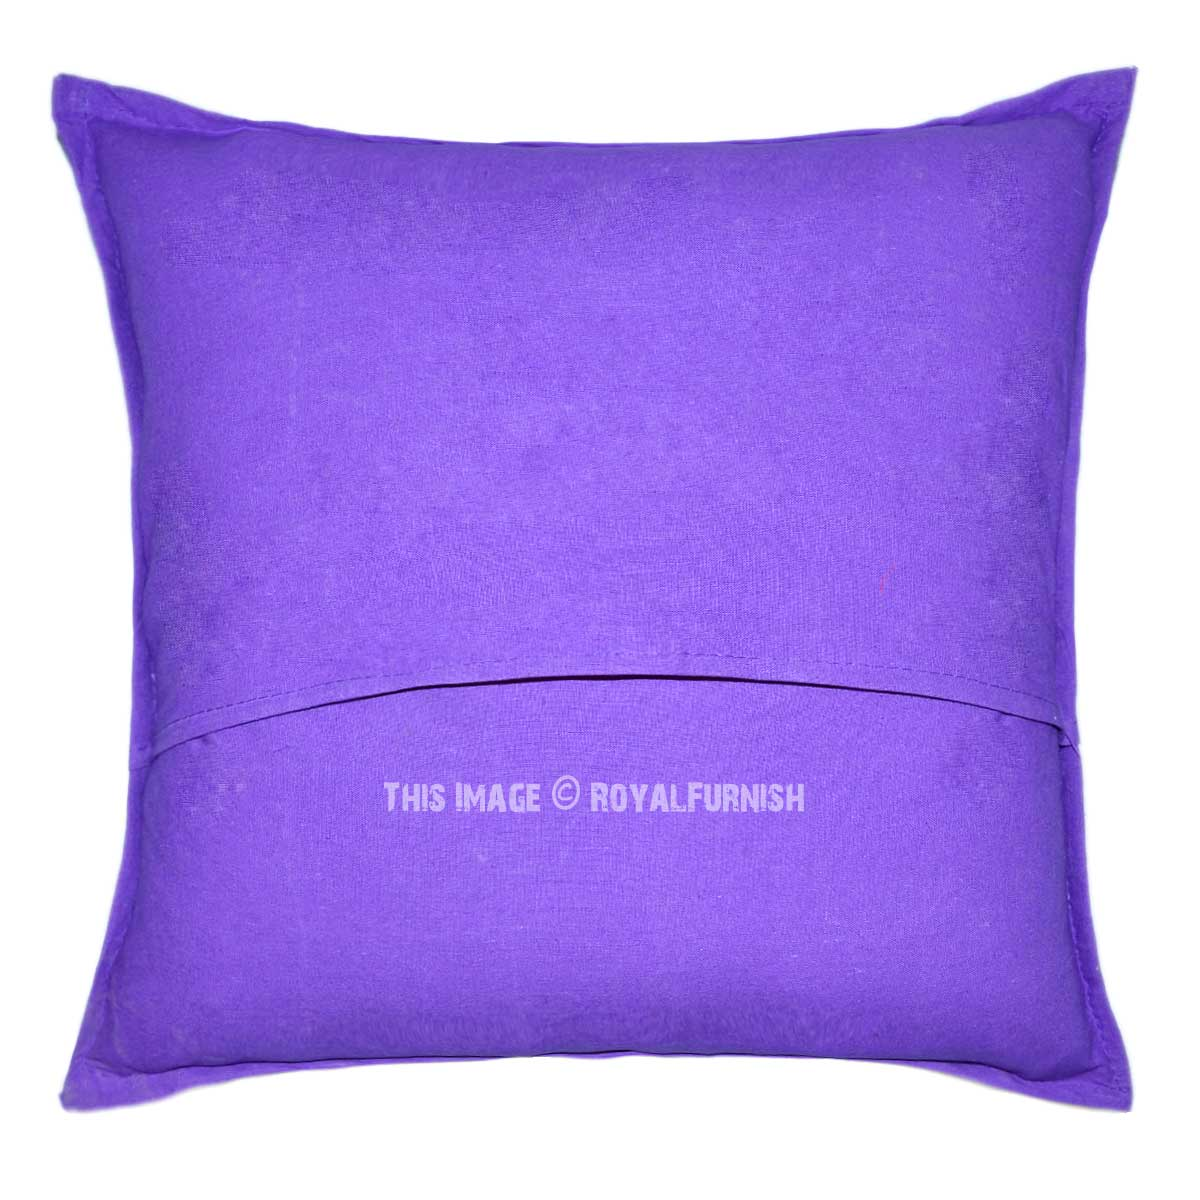 idea for image pillows decors to design livingroom purple of decorative and pillow elegance